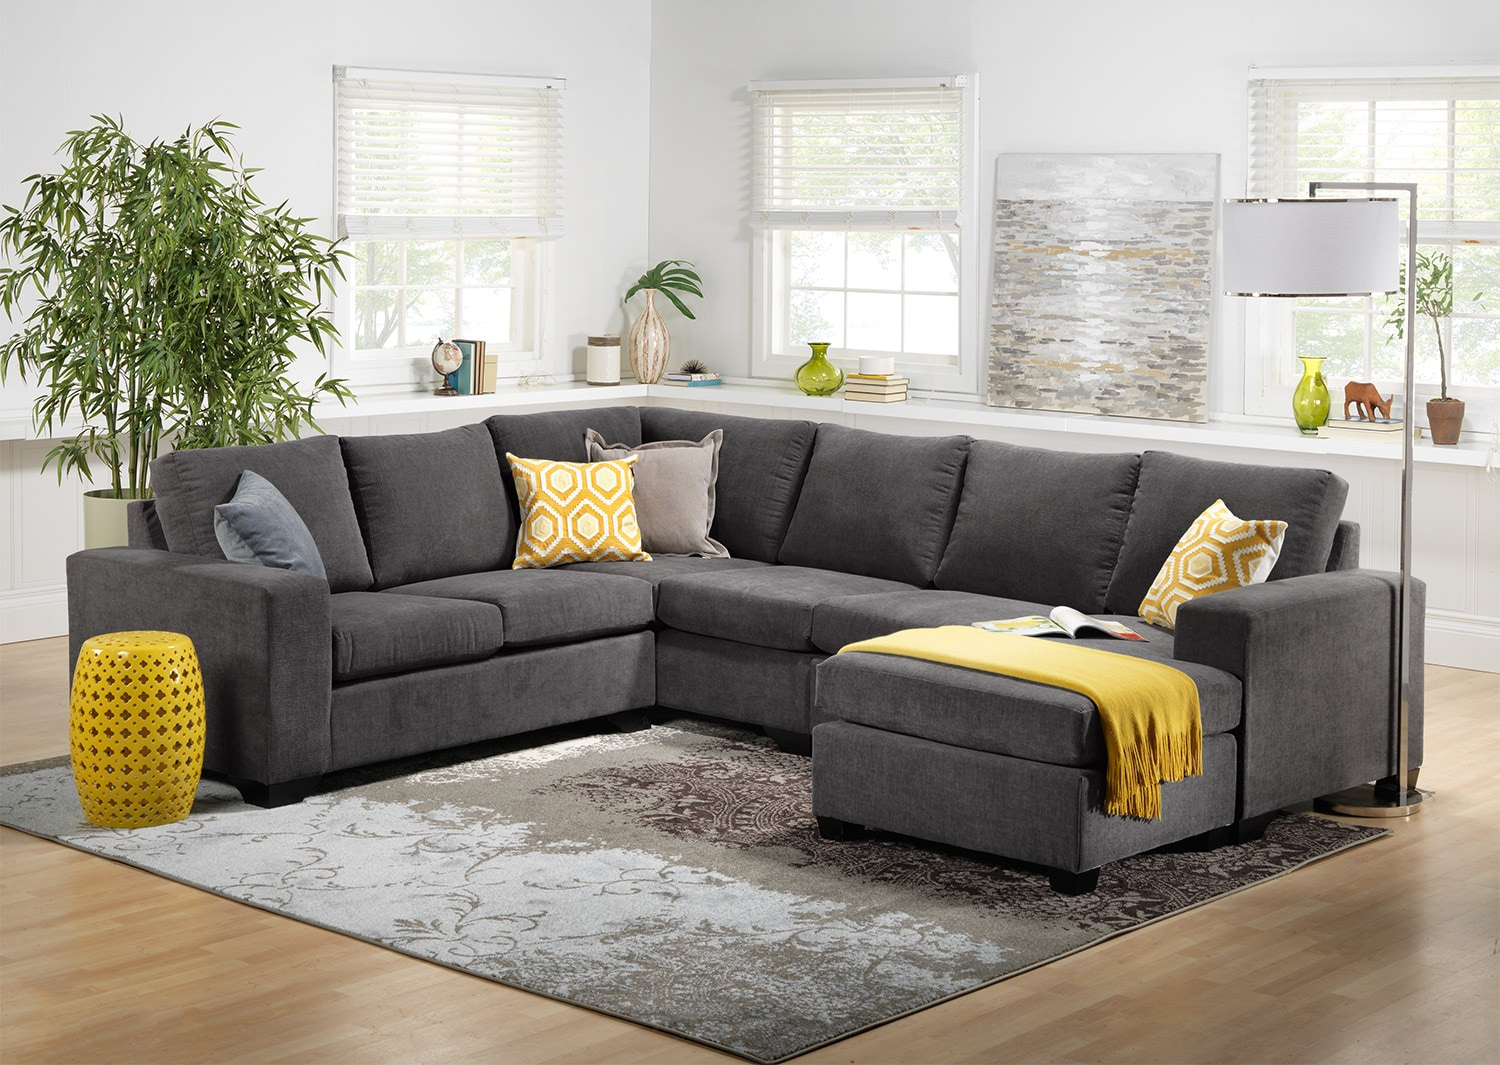 Danielle 3 piece sectional with right facing corner wedge for Family room furniture